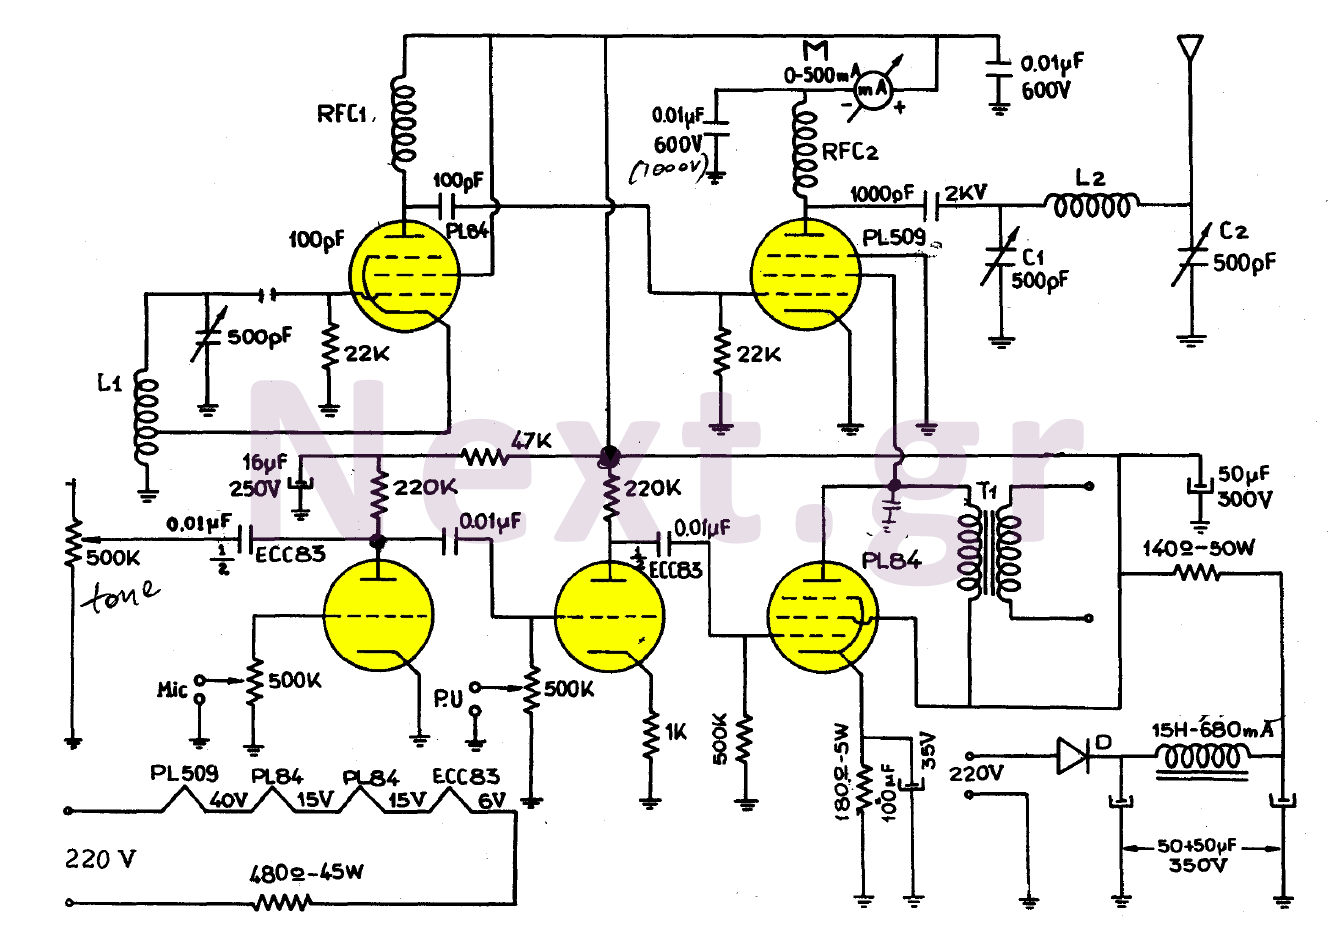 Simple Valve MW Transmitter circuit 30W